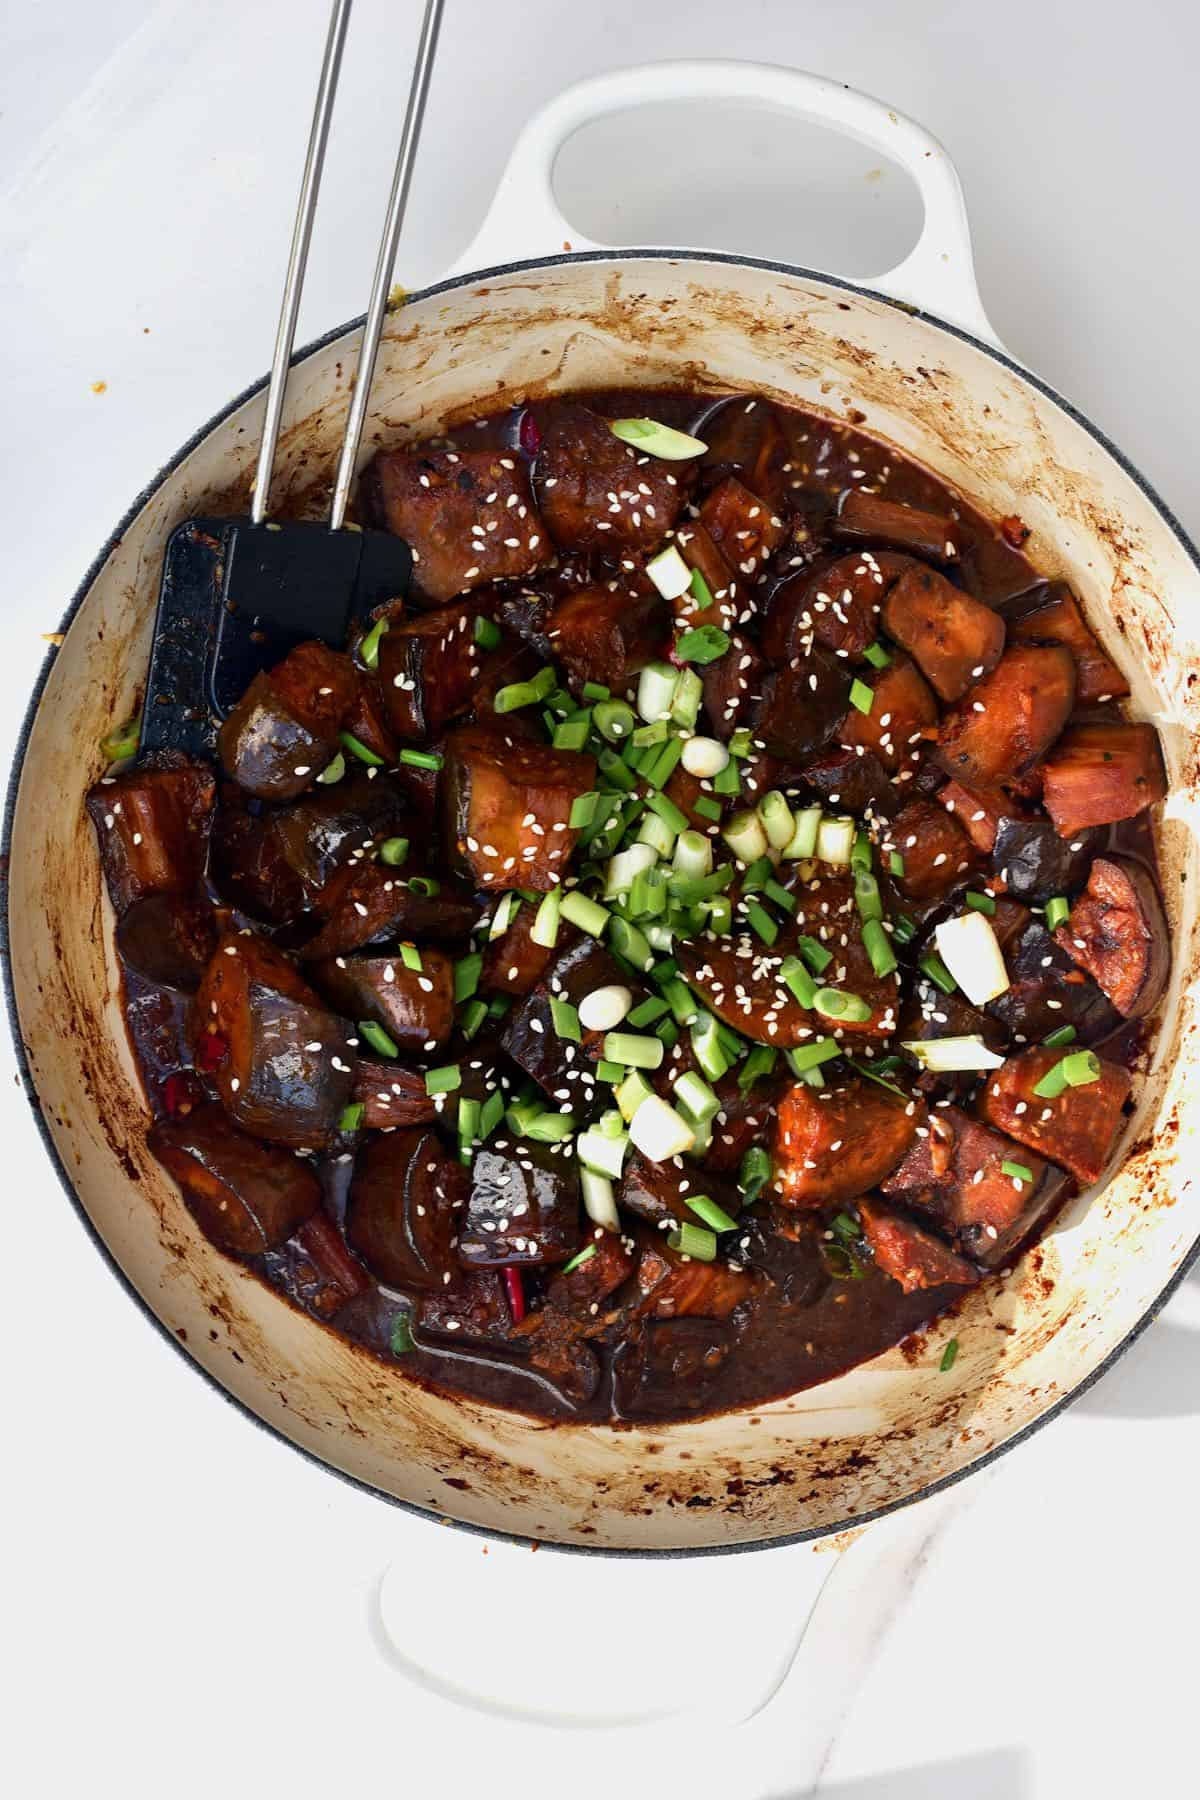 Braised eggplant in a pot